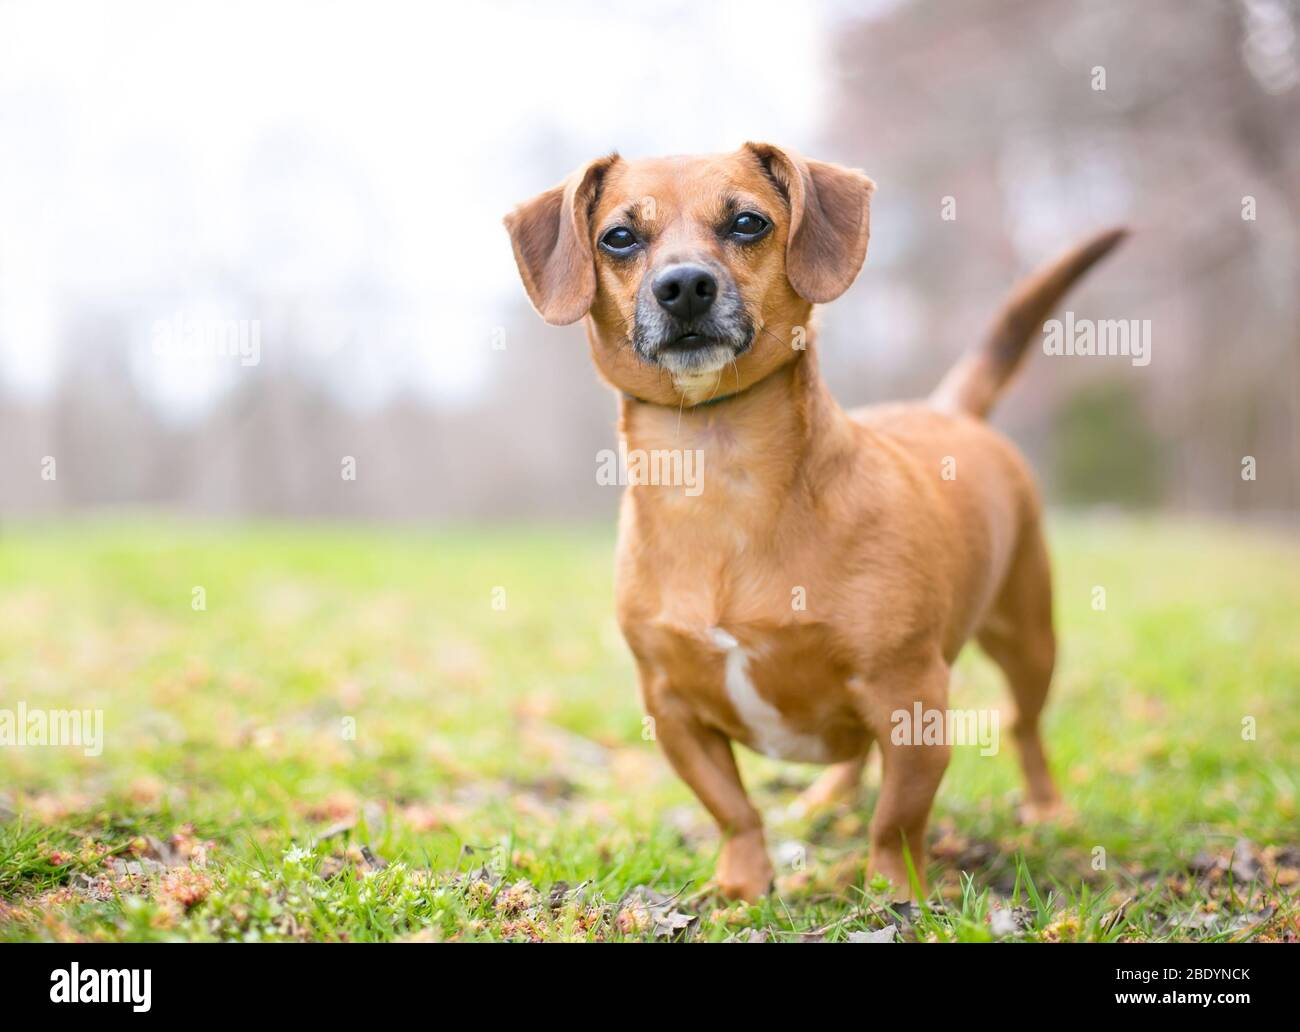 A cute red Dachshund mixed breed dog standing outdoors Stock Photo